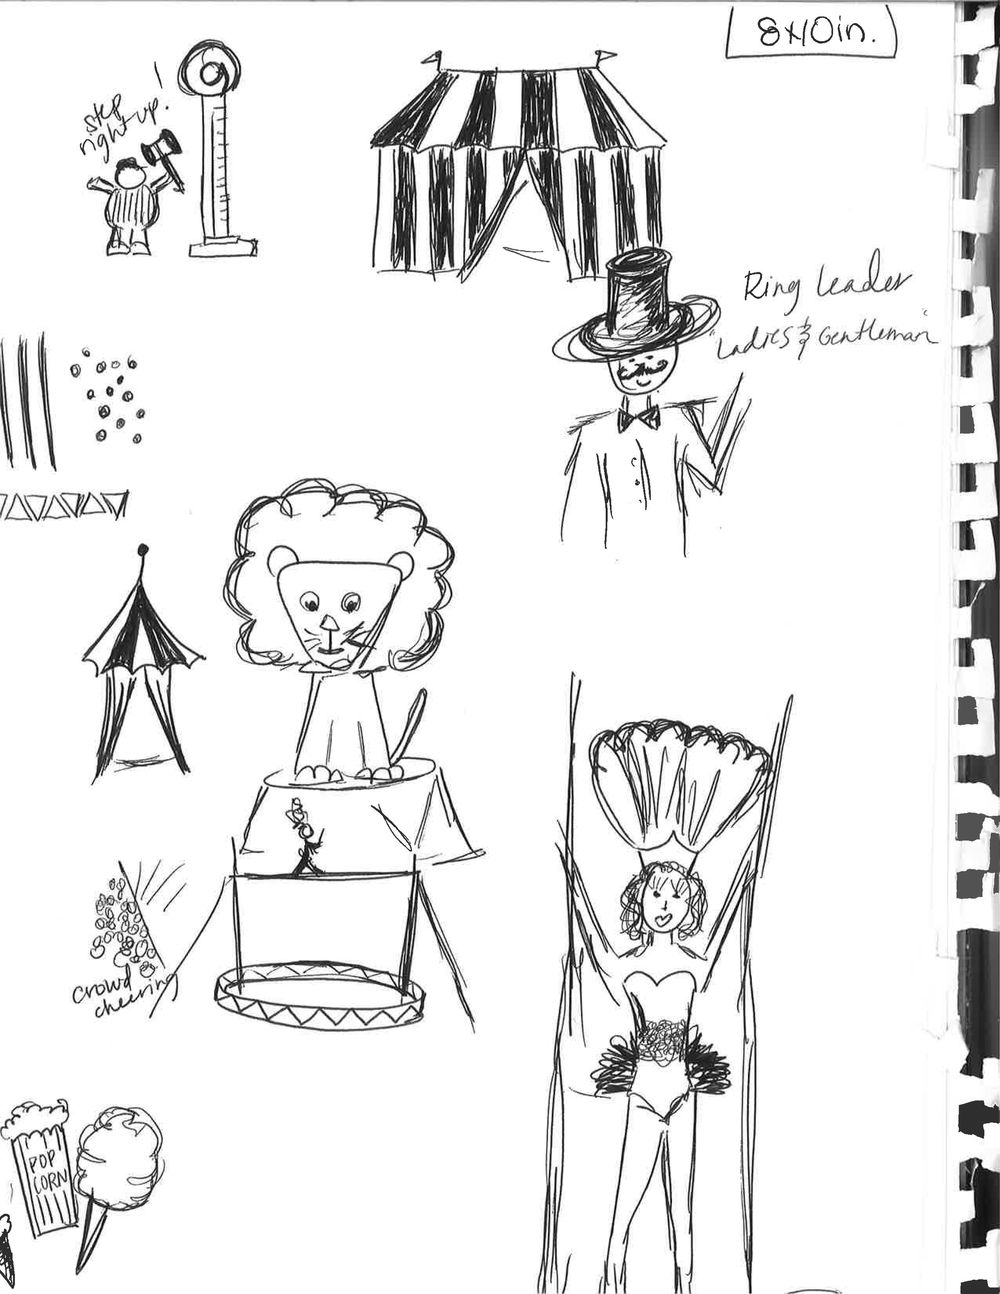 Circus Commotion - image 2 - student project